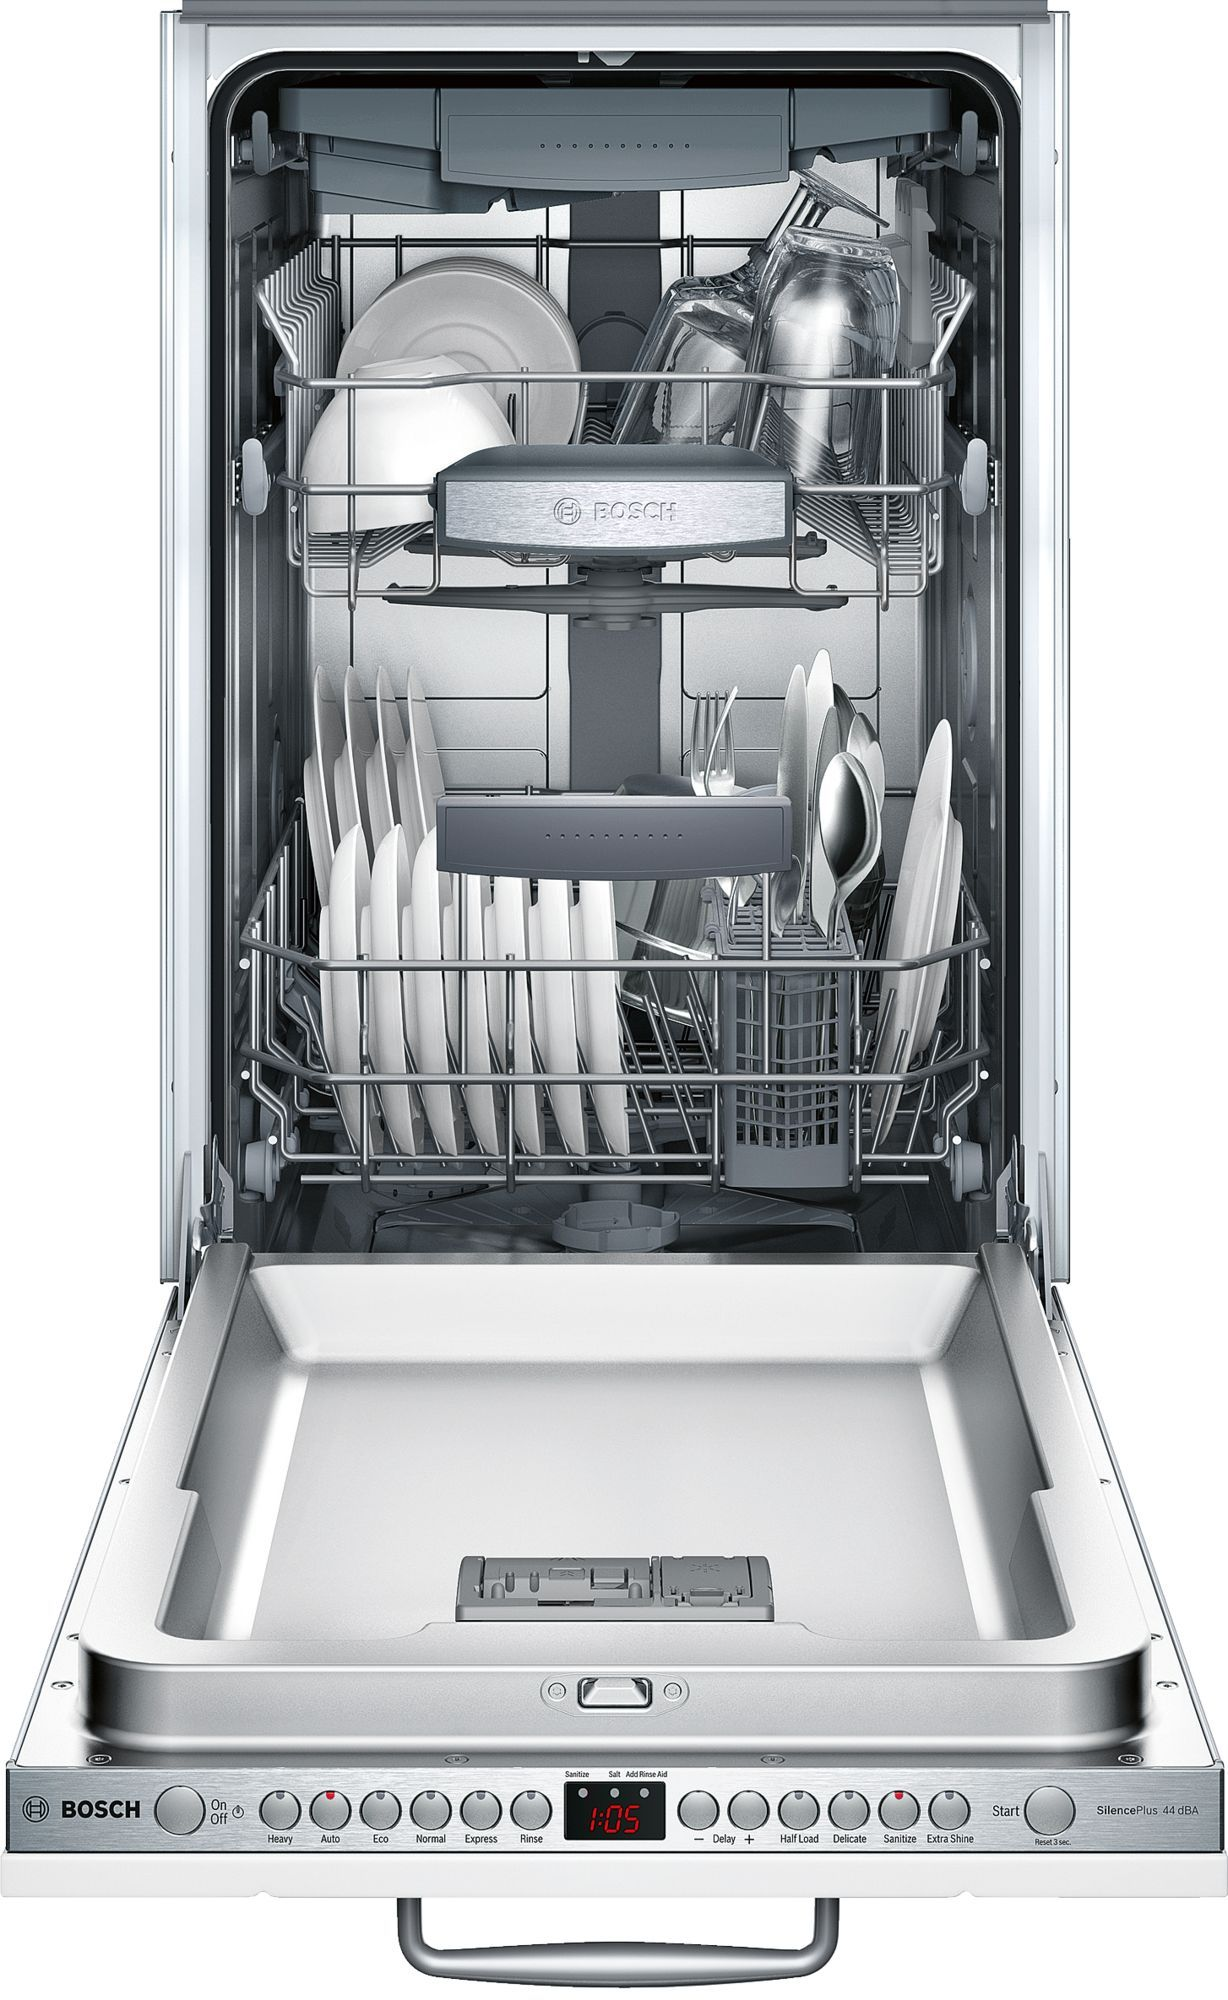 Bosch Spv68u53uc Dishwasher Steel Tub Built In Dishwasher Integrated Dishwasher